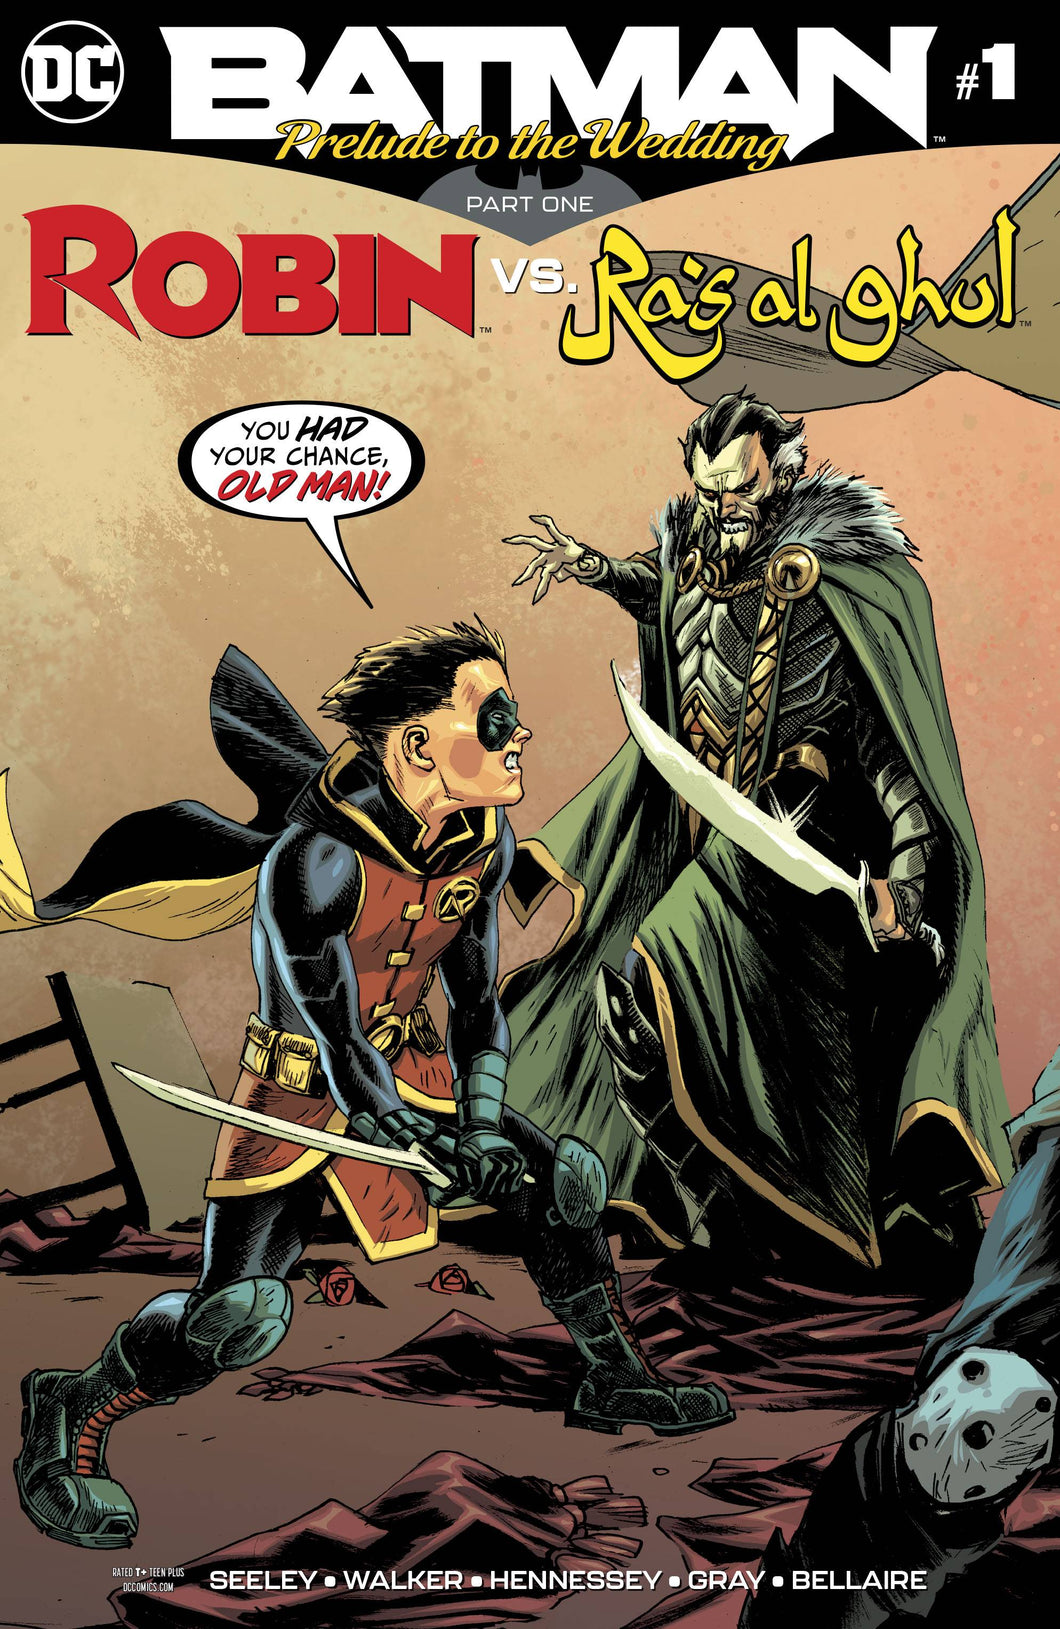 BATMAN PRELUDE TO THE WEDDING ROBIN VS RAS AL GHUL #1 (05/30/2018)